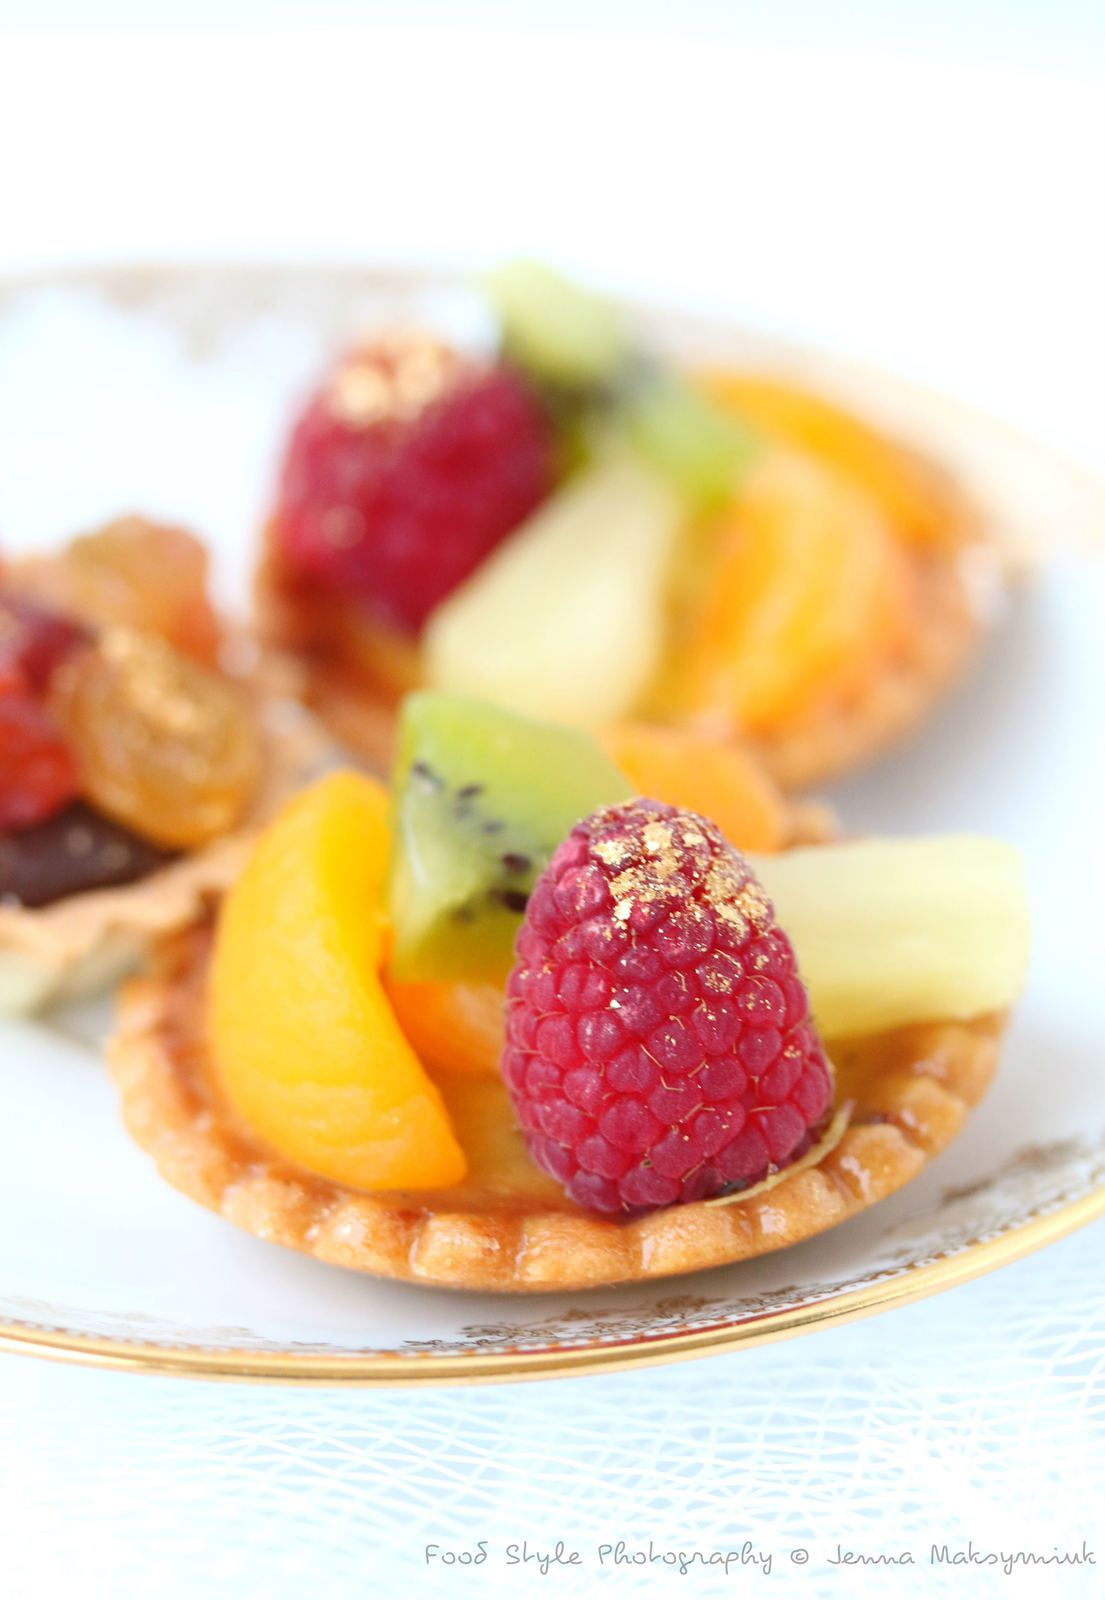 Mini tartelette aux fruits - Bistro de Jenna